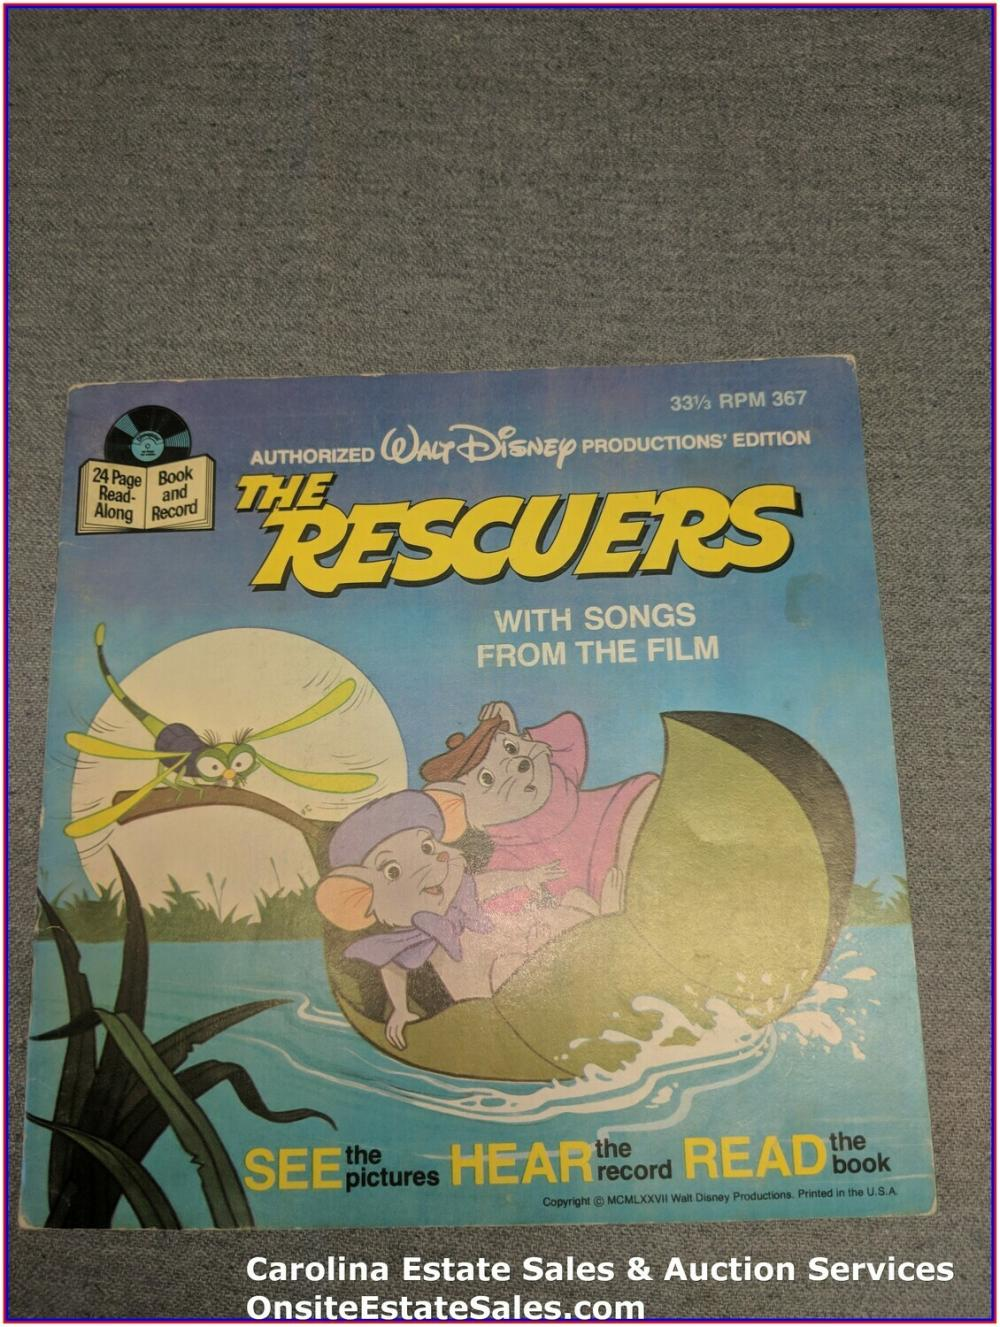 The Rescuers - Walt Disney Book & Record